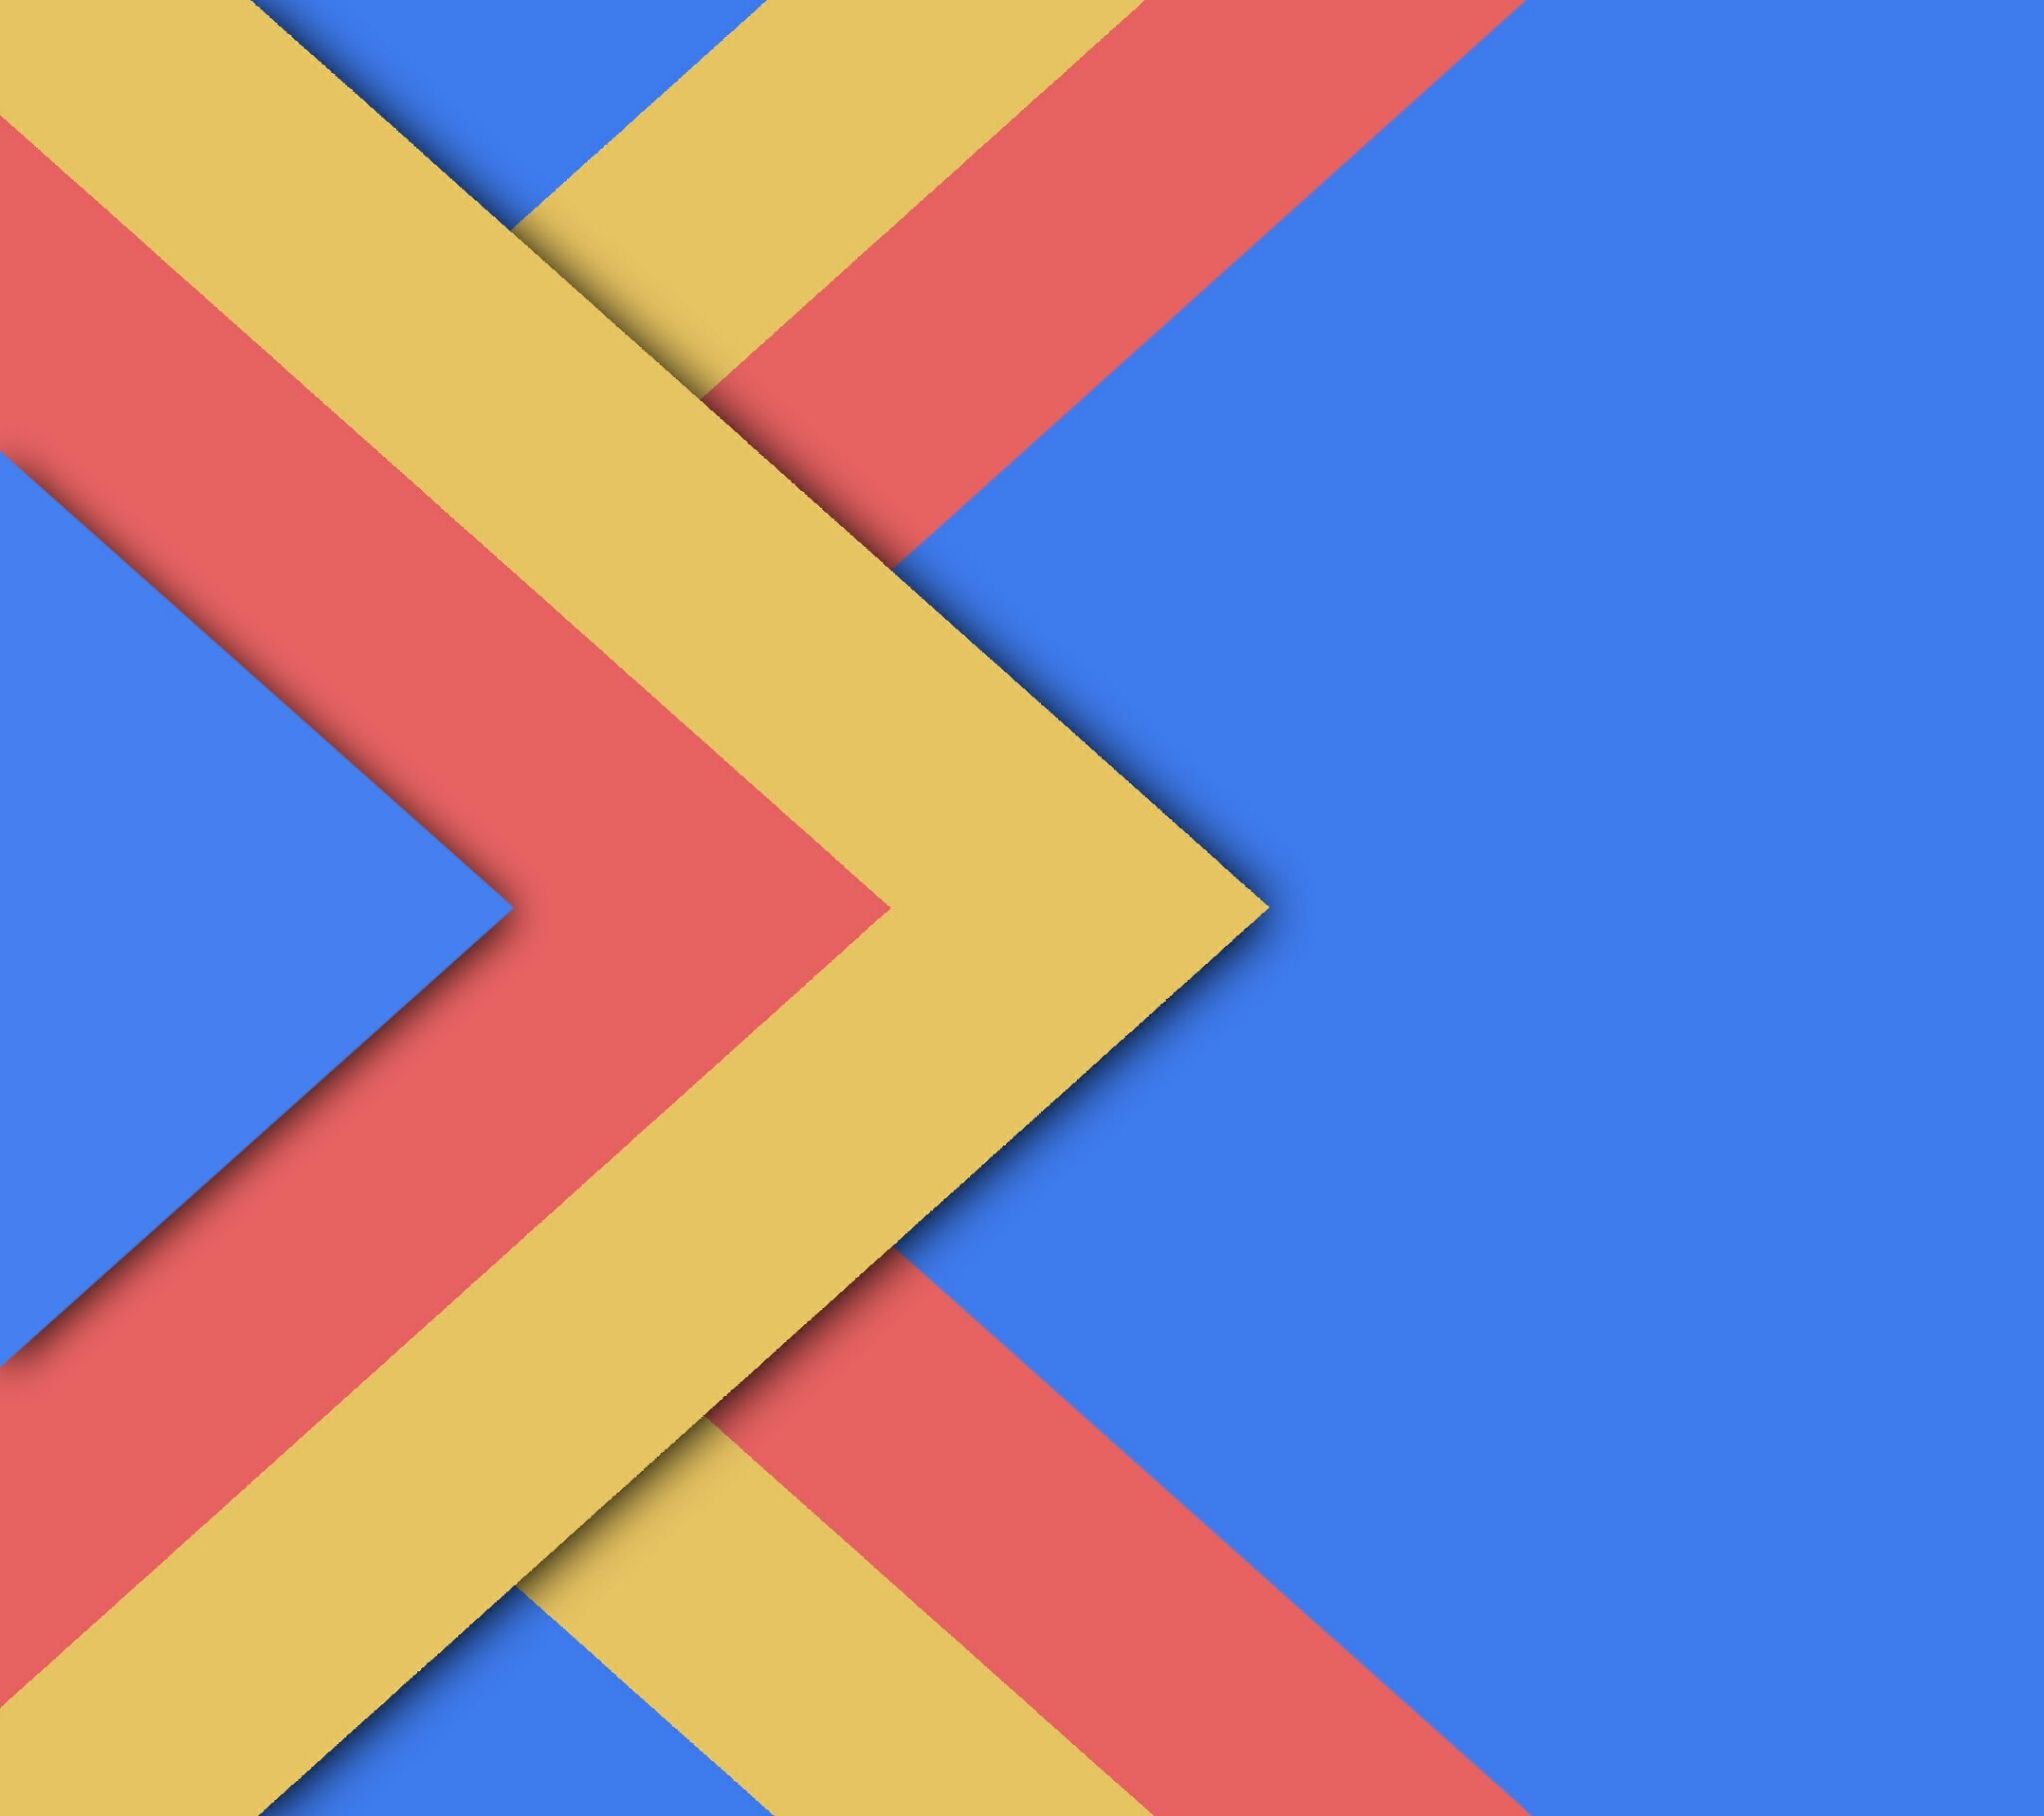 400 material design wallpapers